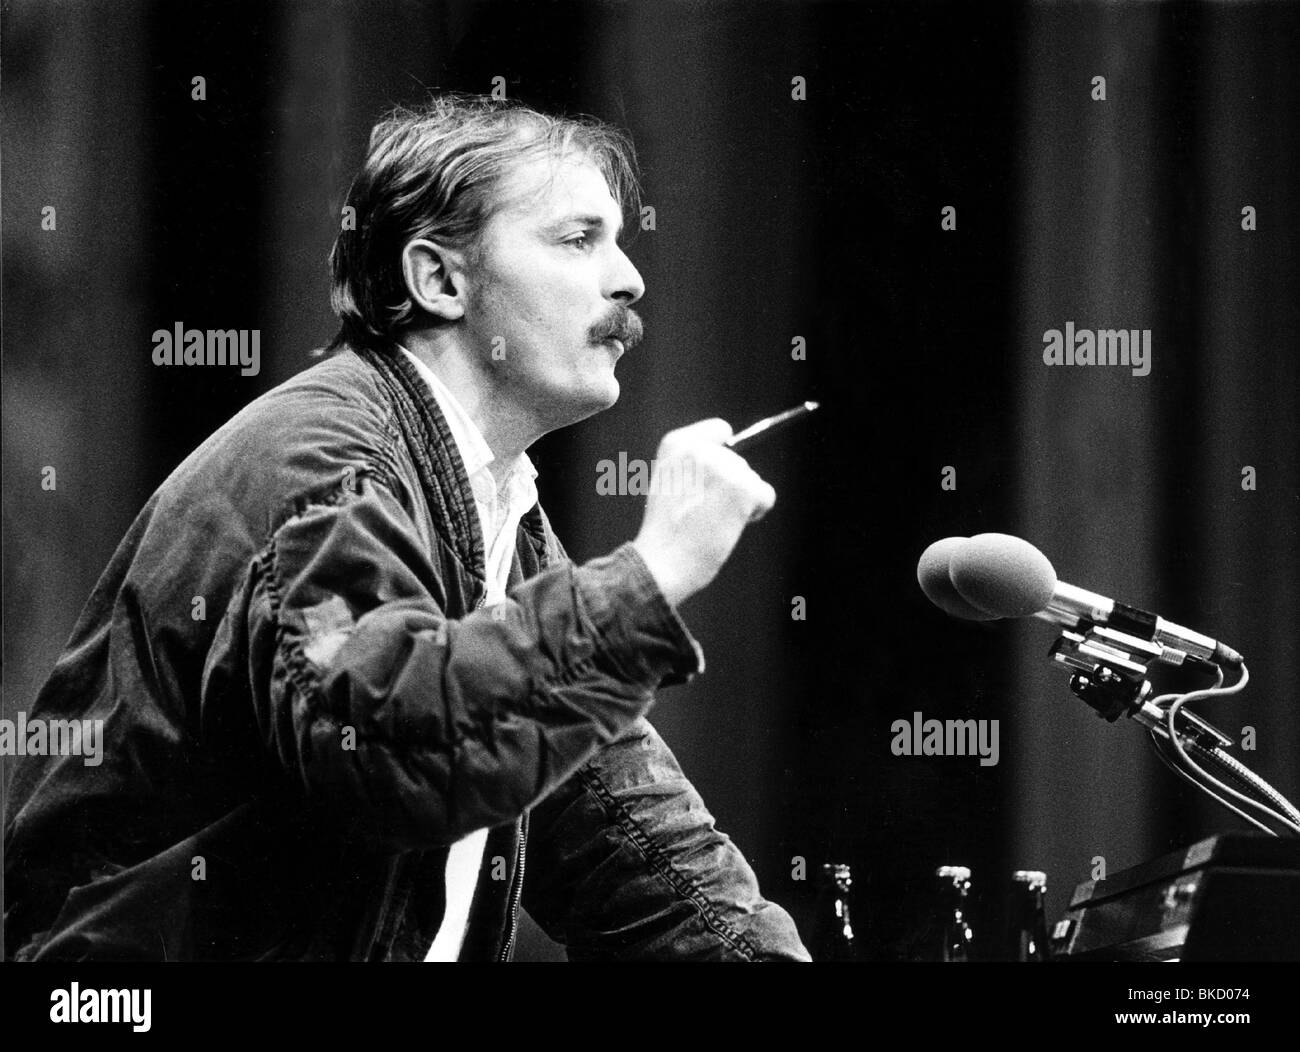 Hubert,  Kleinert, German politician, portrait, federal party conference of The Greens, Hamburg, 7.- 9.12.1984, - Stock Image